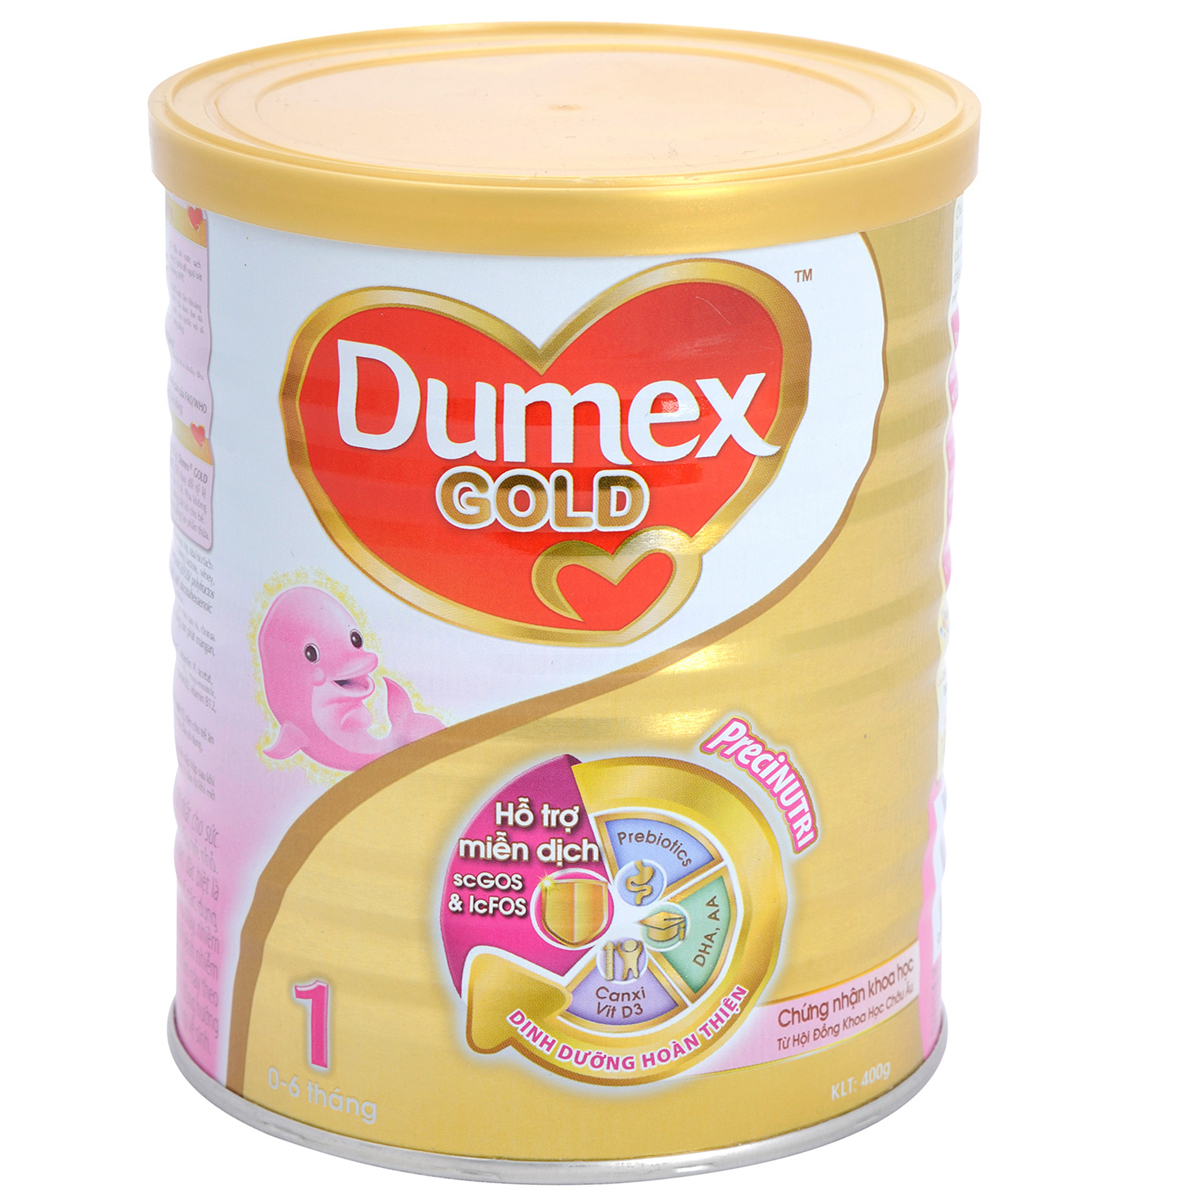 Sua bot Dumex Gold so 1 400g